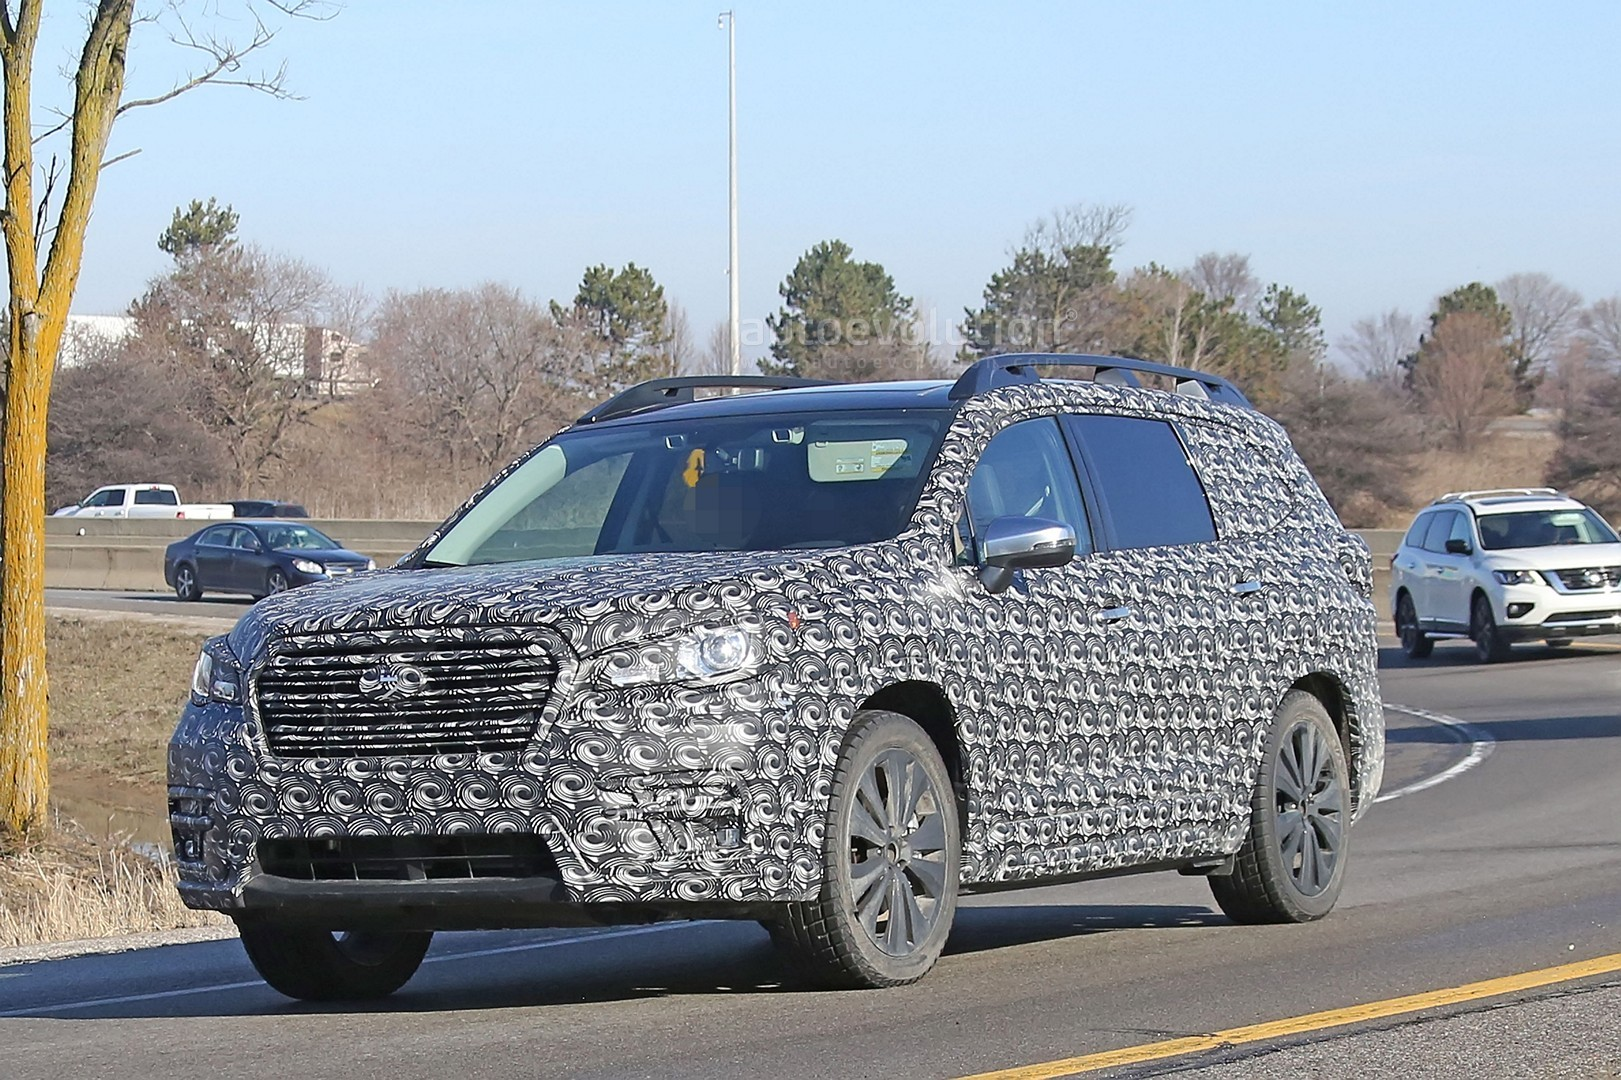 2018 Subaru Ascent 3-Row Crossover SUV Spied in Detail ...